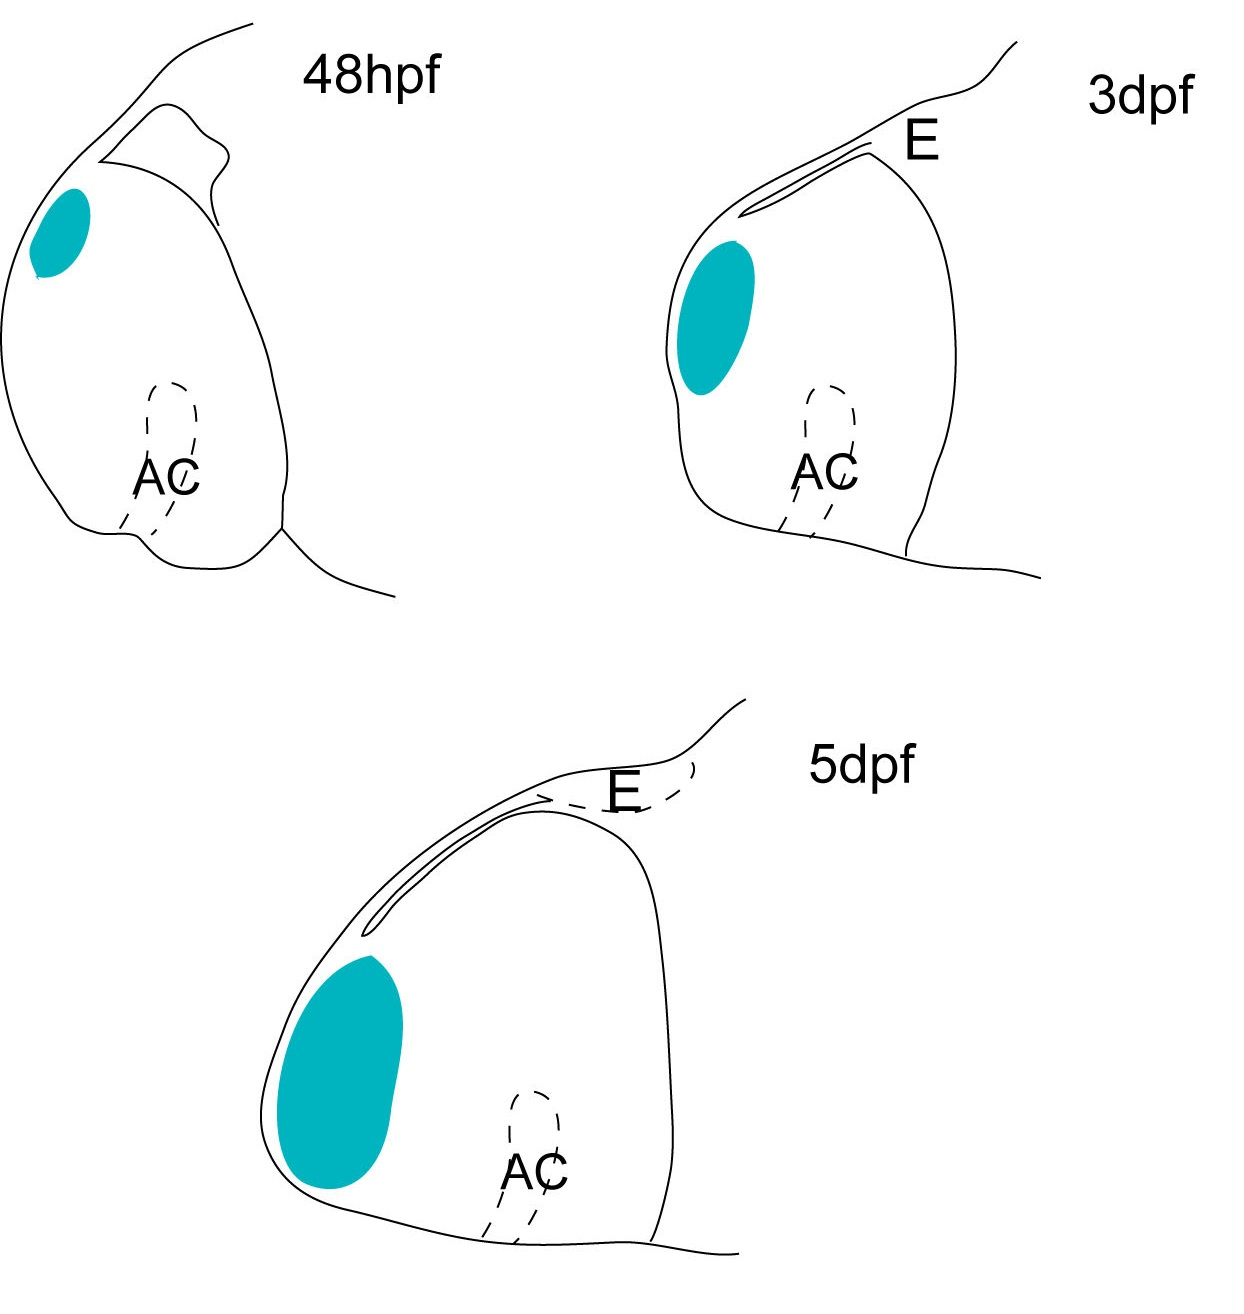 Cartoon showing the position of the olfactory bulb at three different stages of the zebrafish development (2dpf, 3dpf and 5dpf). The olfactory bulb is located in a dorso-posterior position in the telencephalon at 2dpf, but later in development (5dpf) acquires its characteristic anterior position.